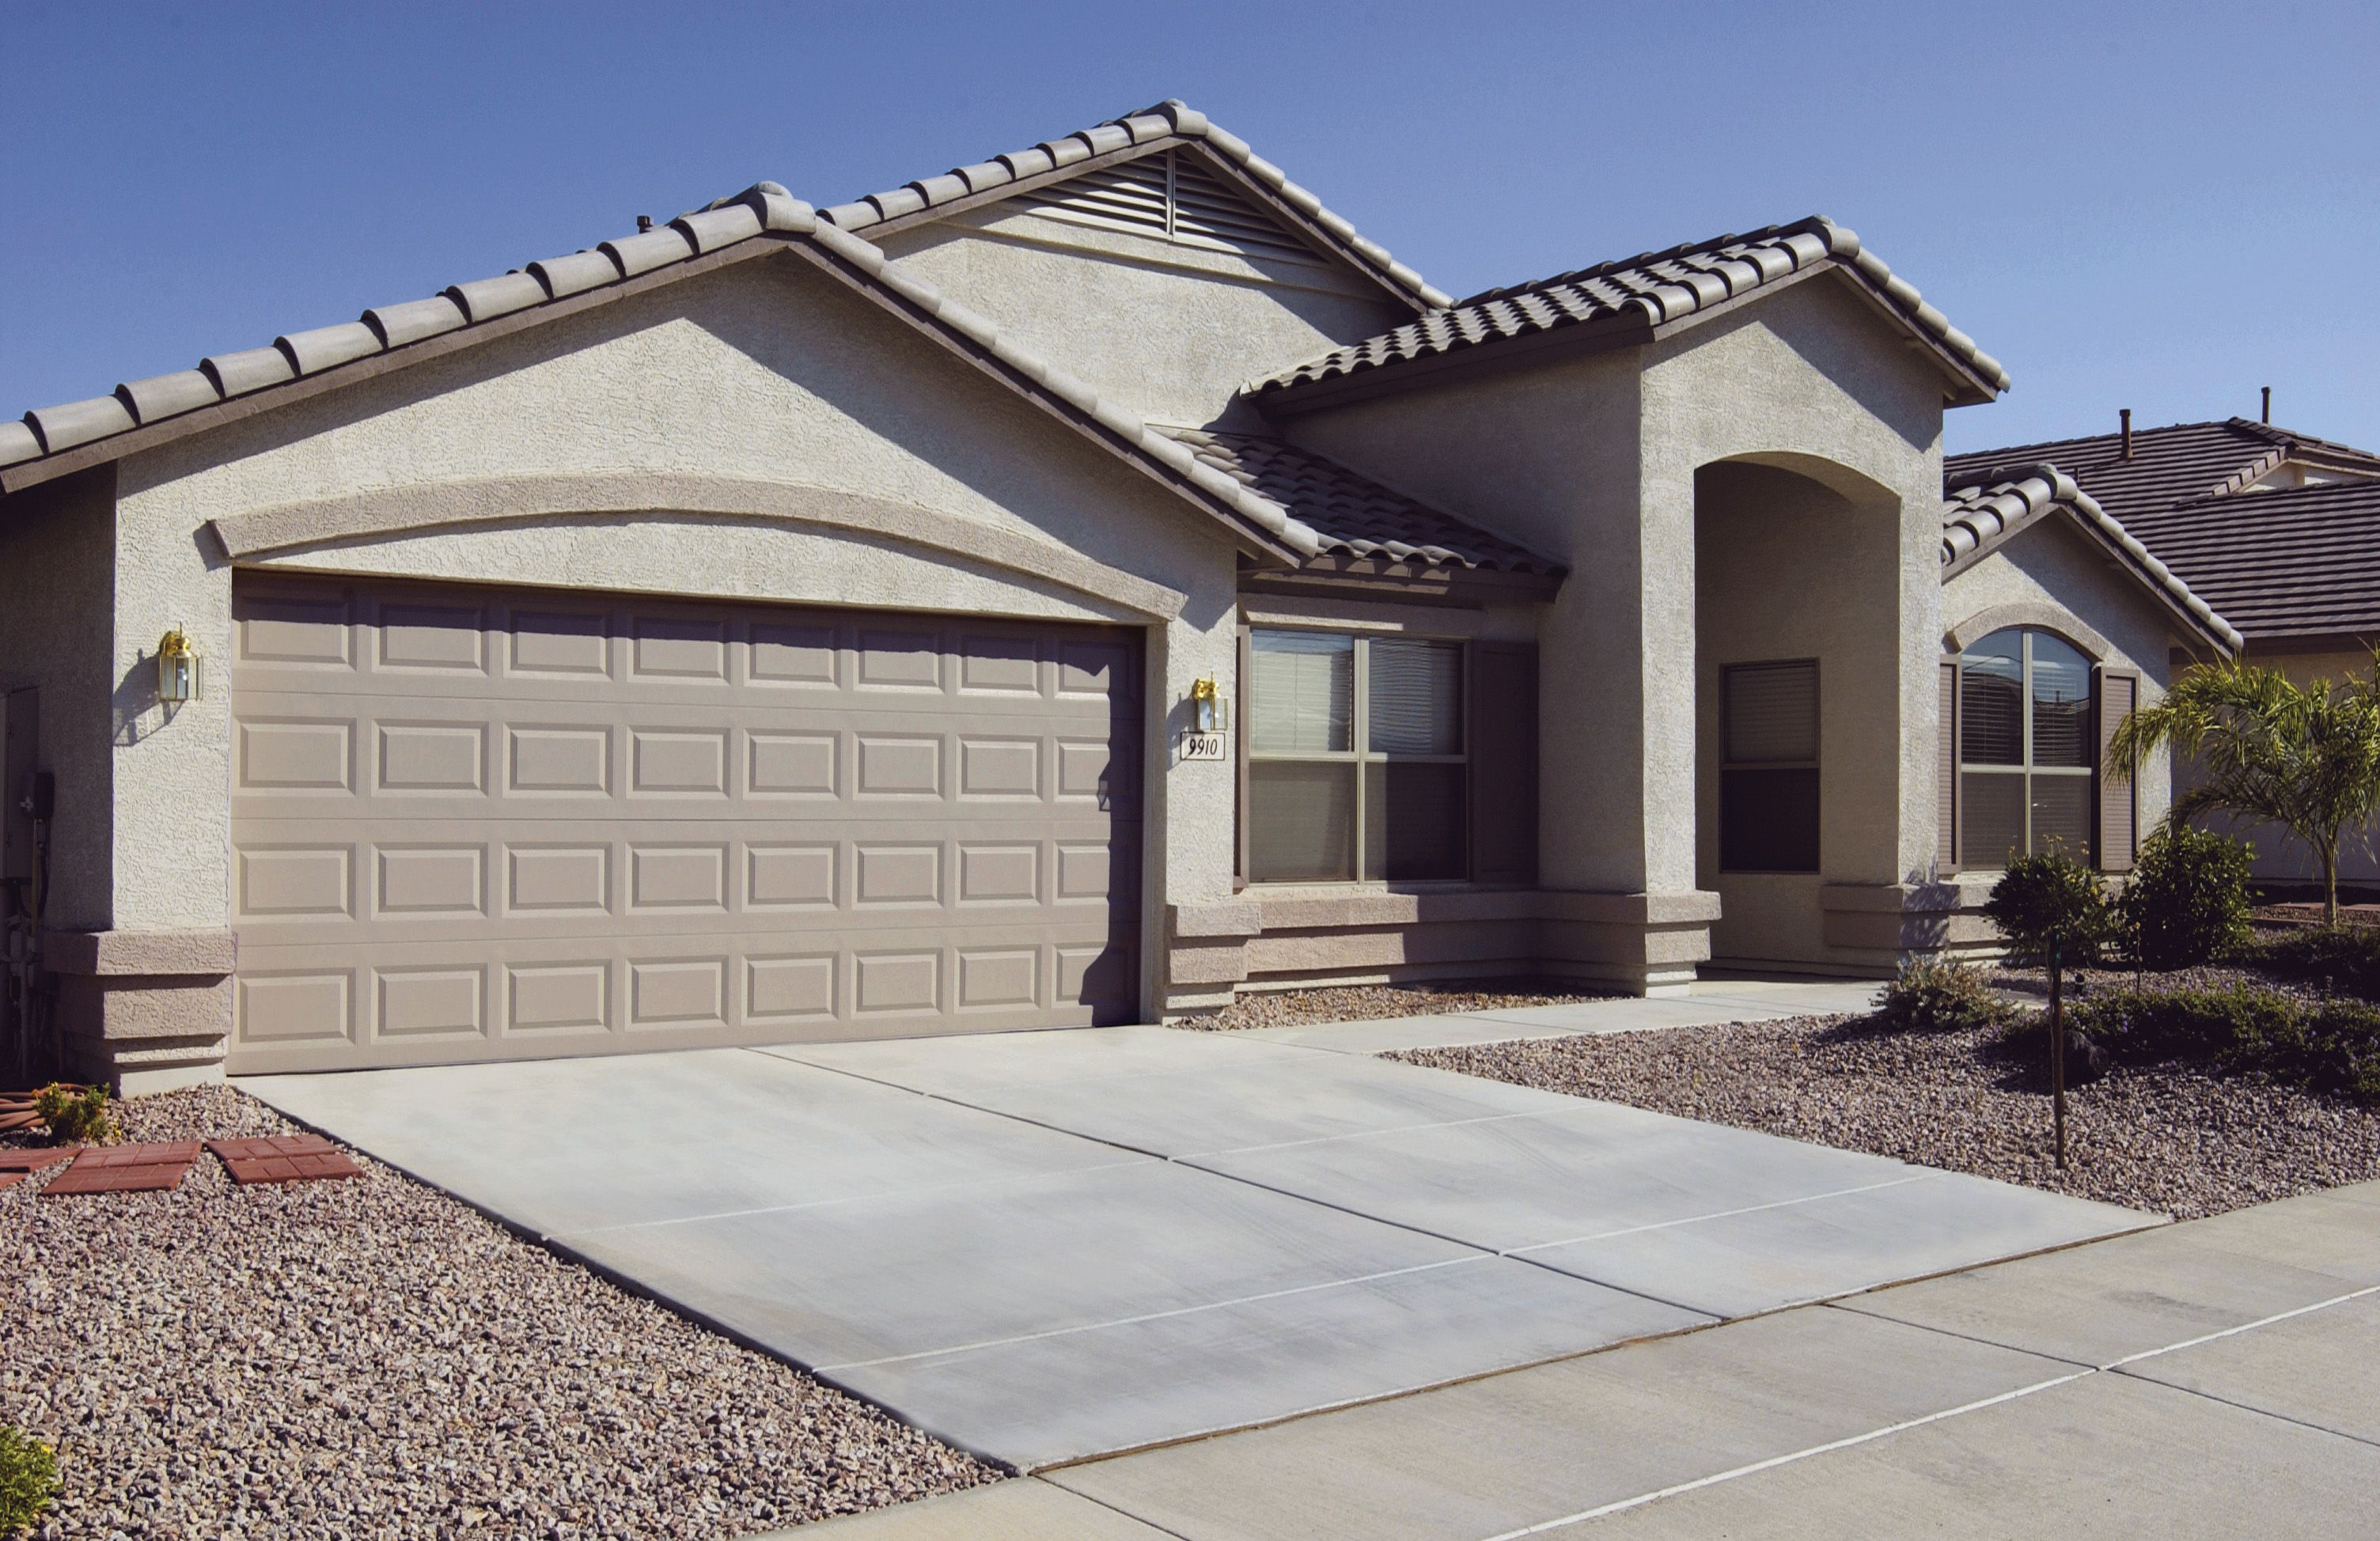 Pin By Banko Overhead Doors Inc On Residential Garage Doors Residential Garage Doors Garage Doors